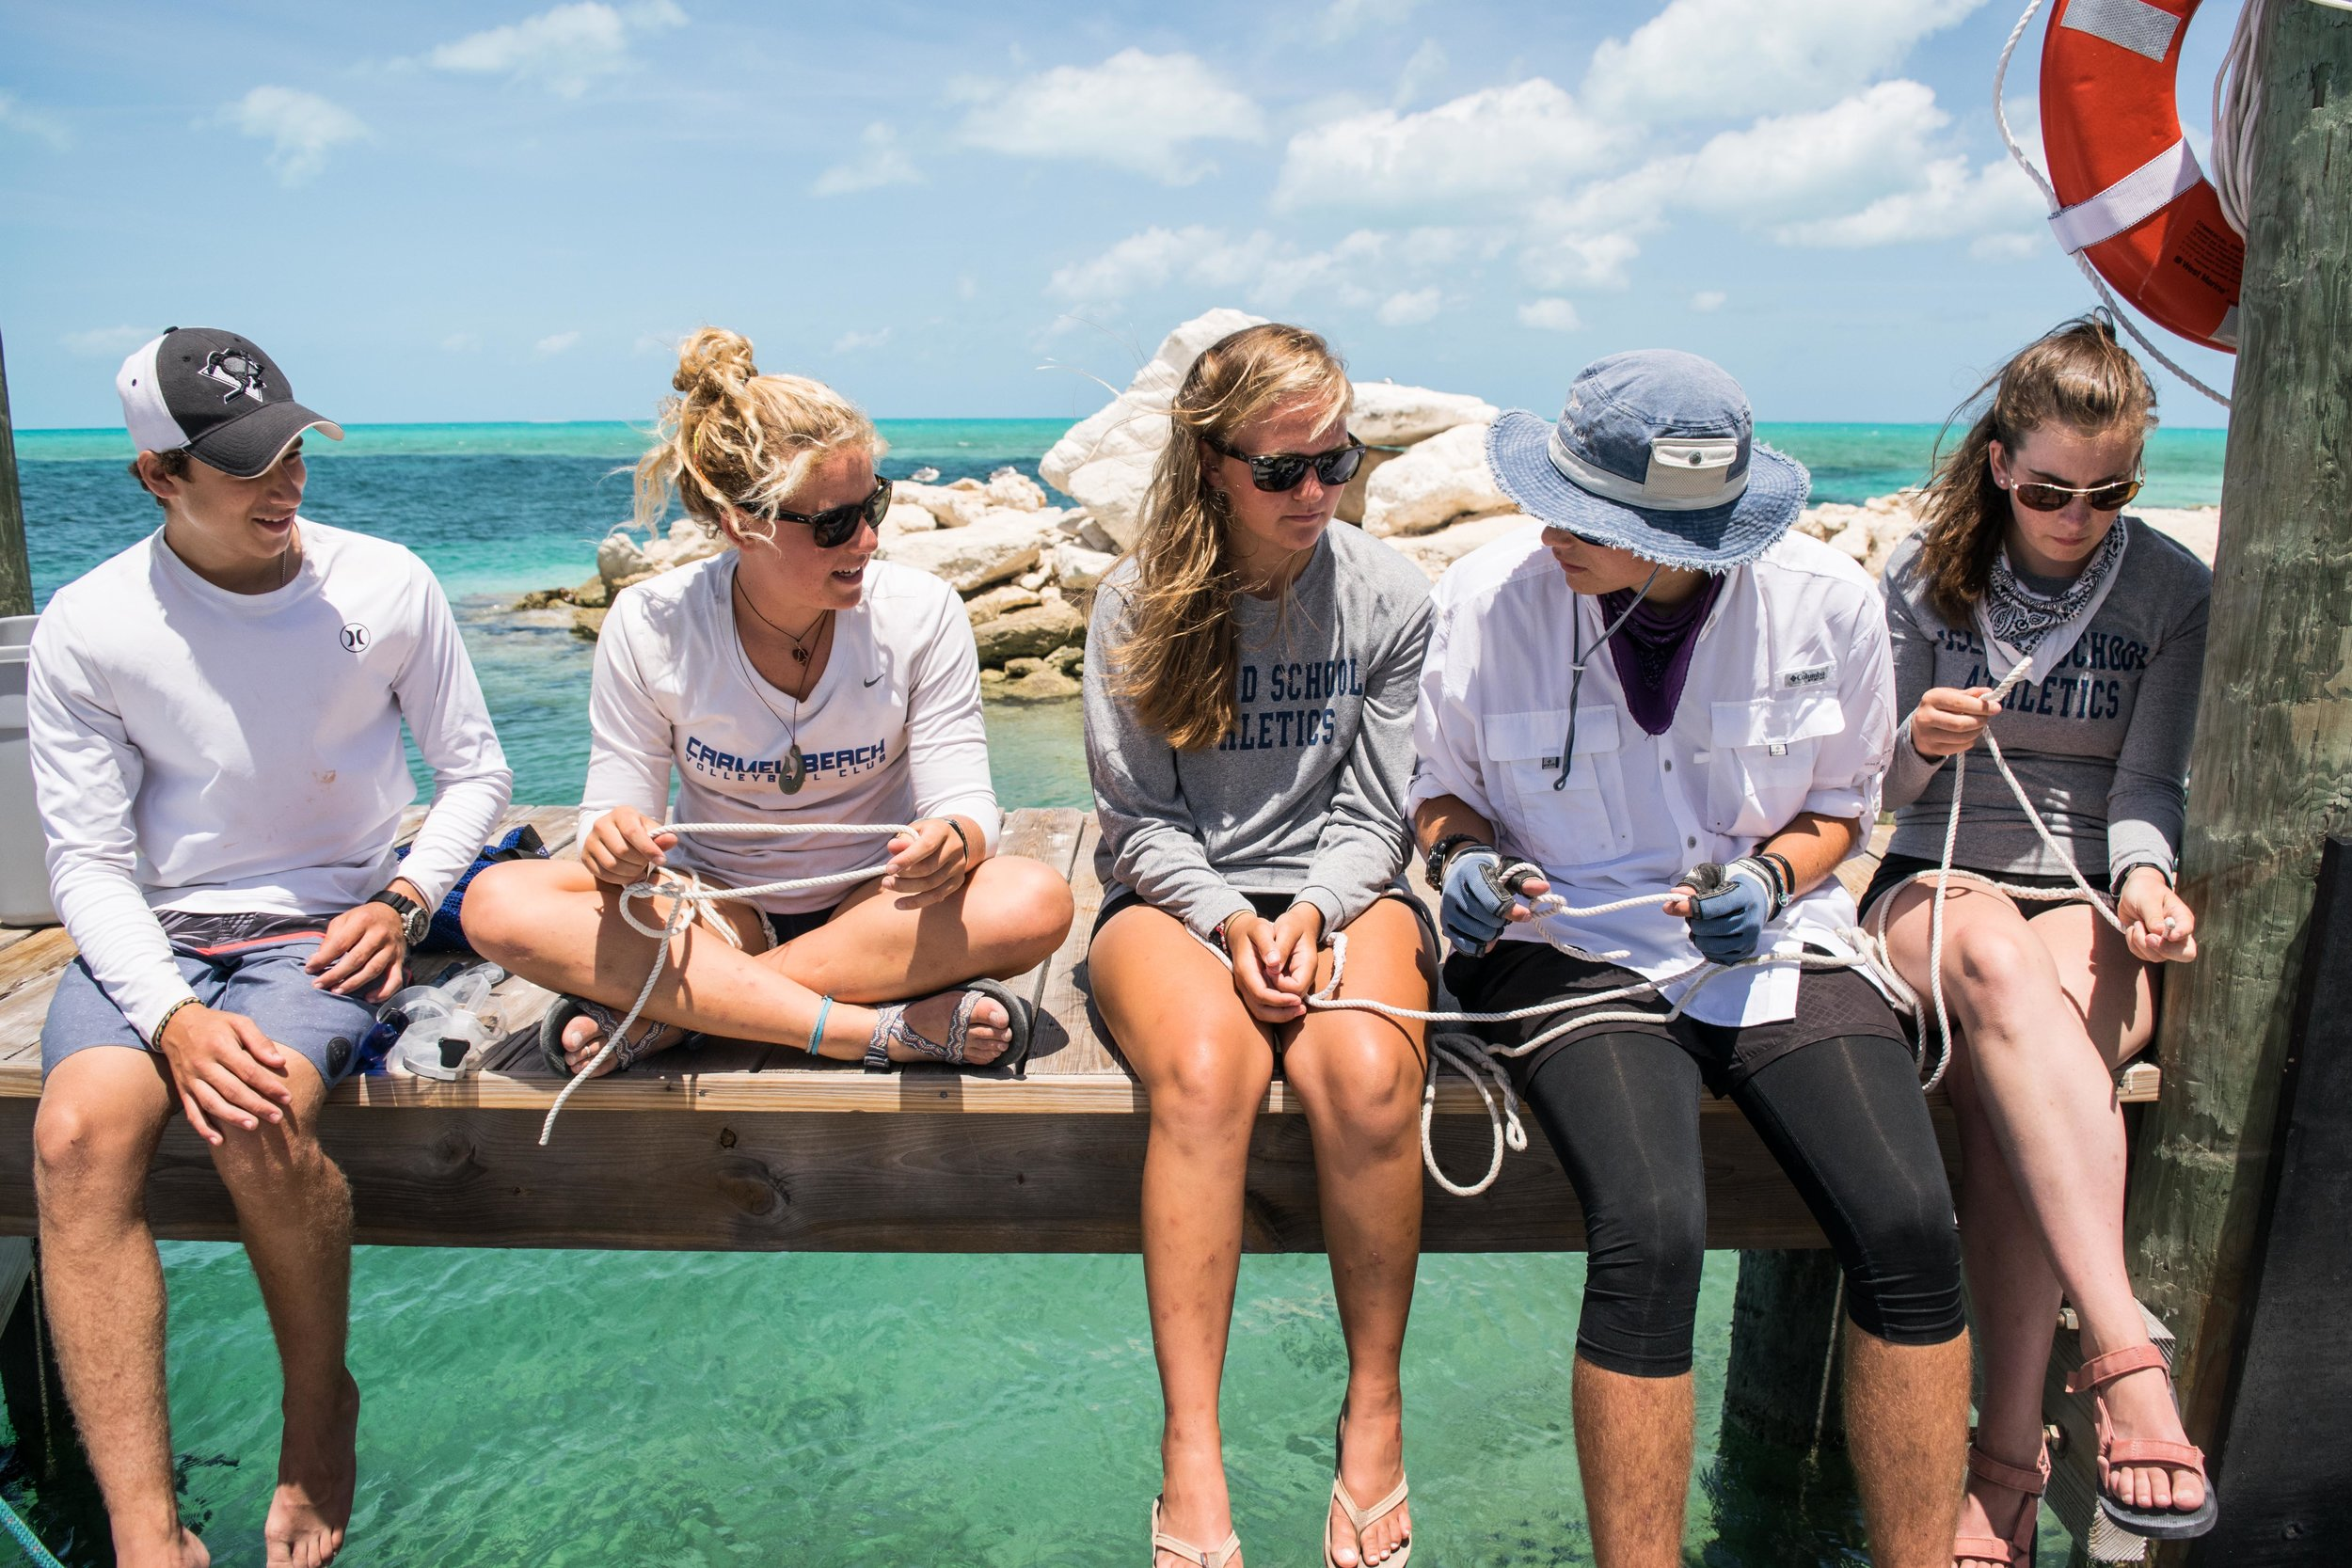 Brad, Alex, Megan, Andrew, and Brenna practice various knots before hopping on their sailboat.